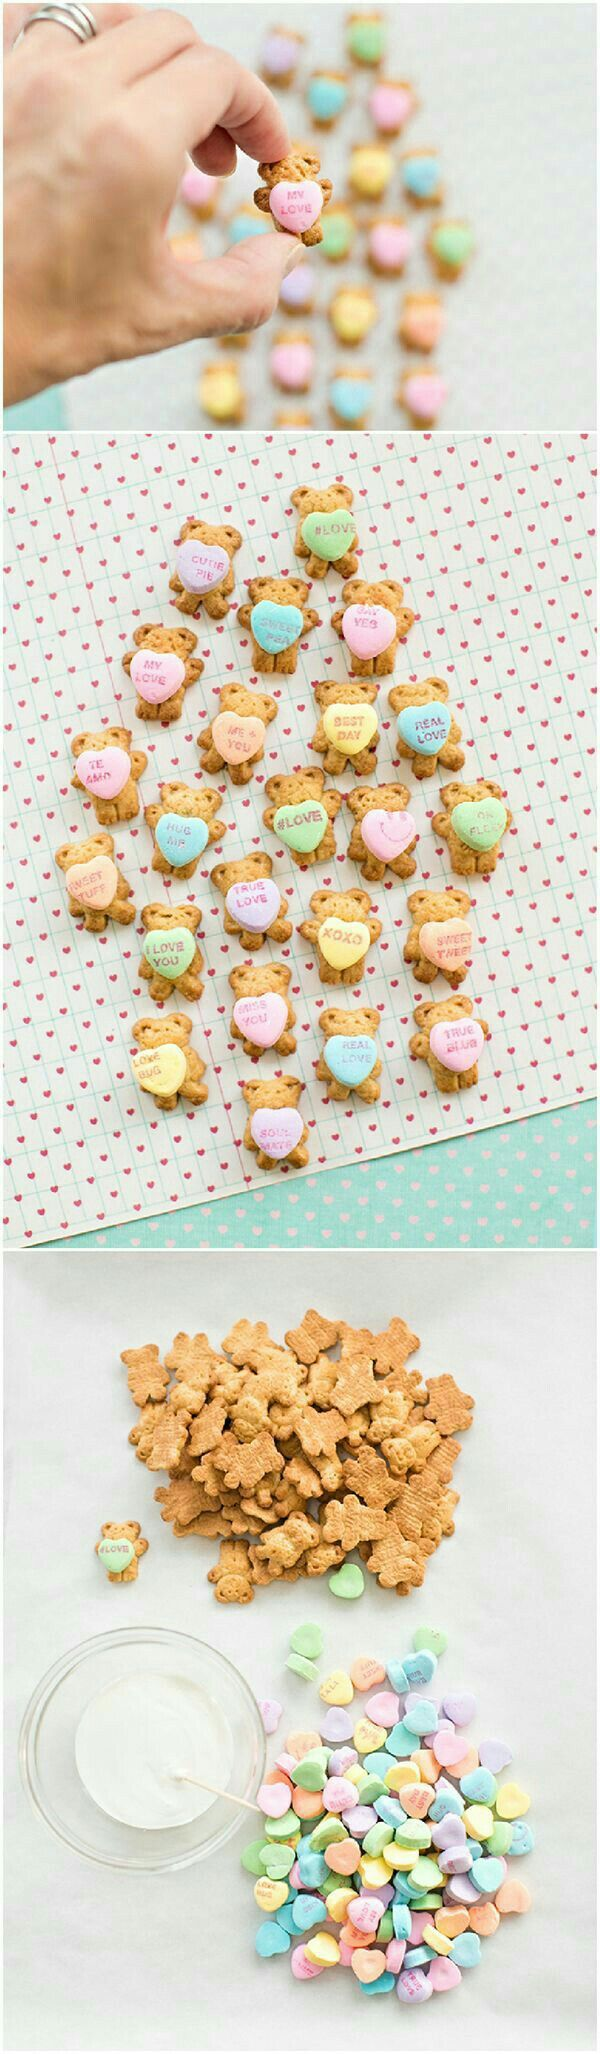 Teddy graham and conversation hearts Valentine's Day idea